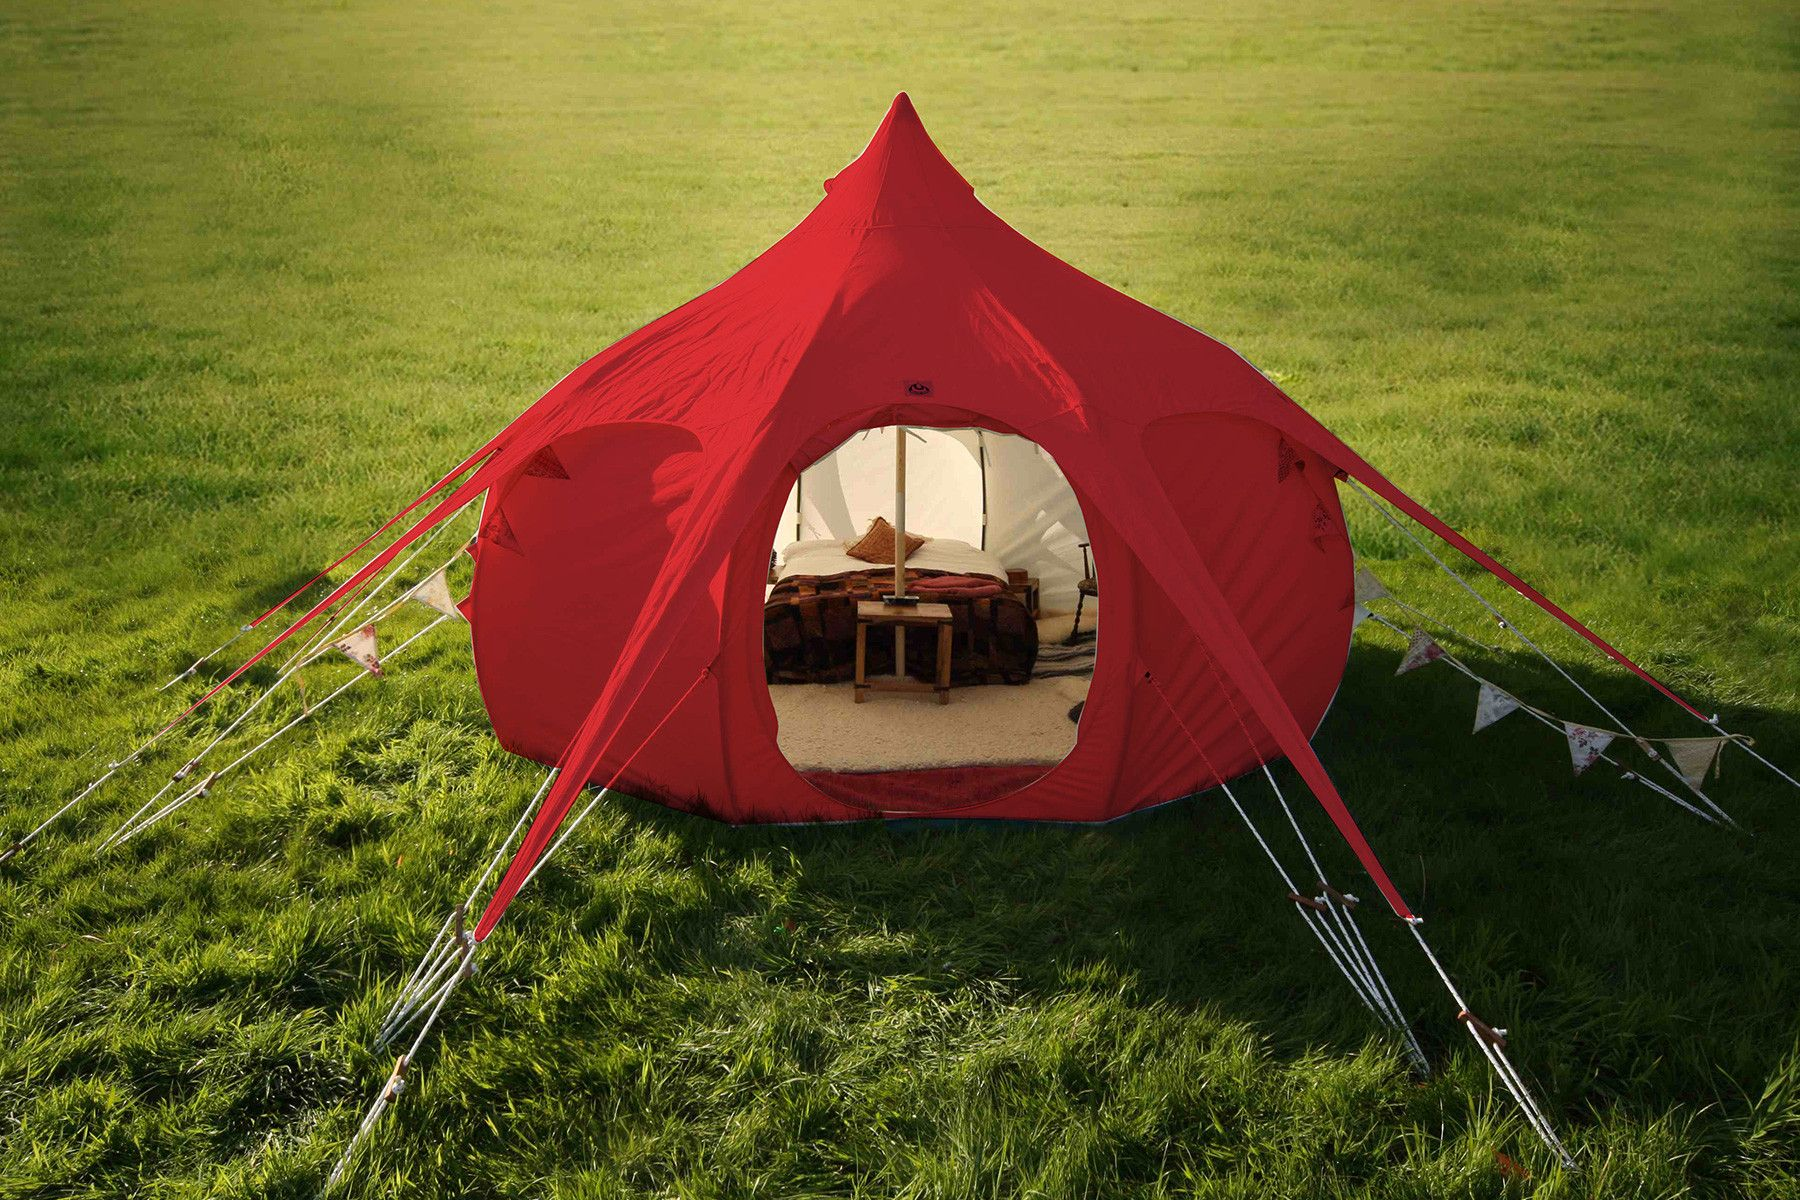 Pin By Aric Liljegren On To Be Sorted Luxury Camping Tents Lotus Belle Tent Tent Glamping